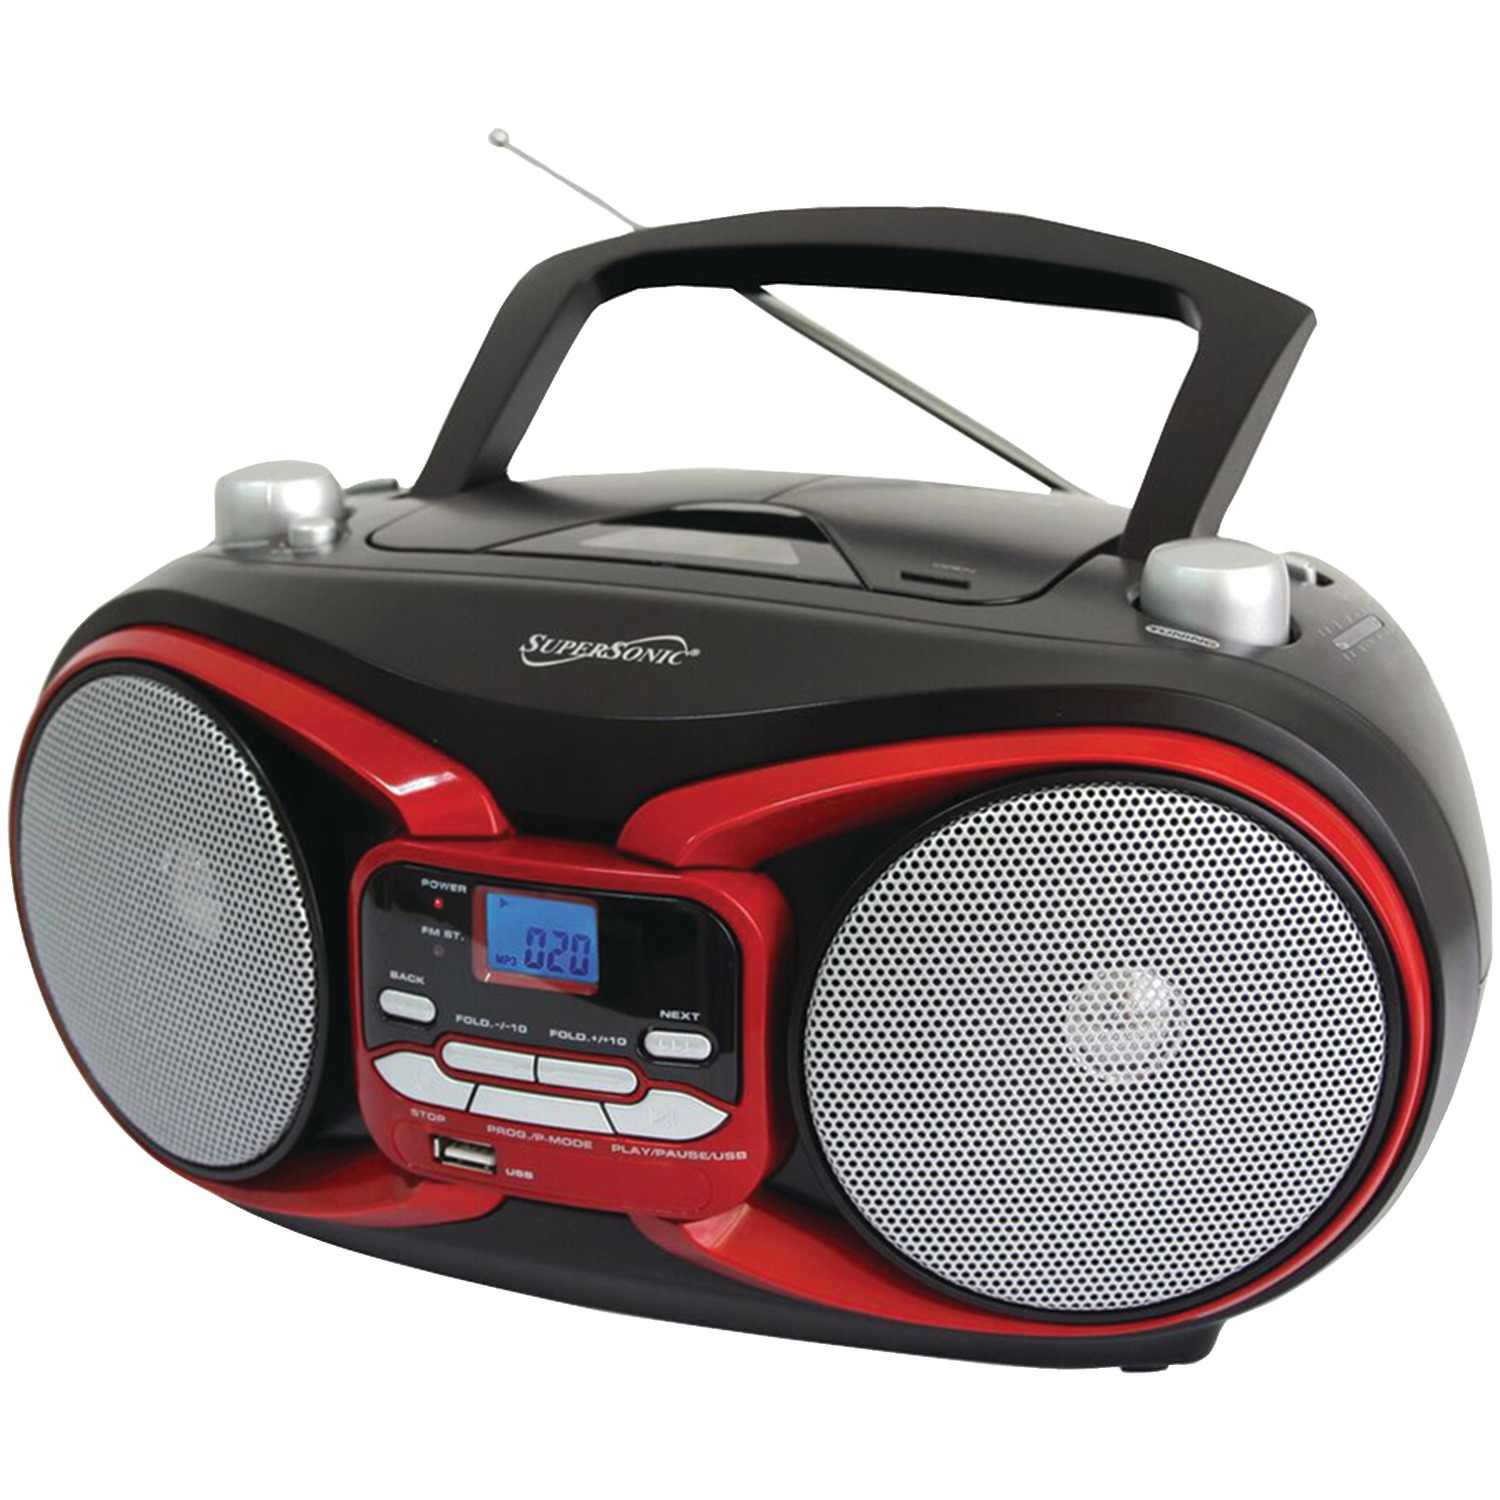 supersonic sc 504 red portable mp3 cd player with am fm radio red. Black Bedroom Furniture Sets. Home Design Ideas